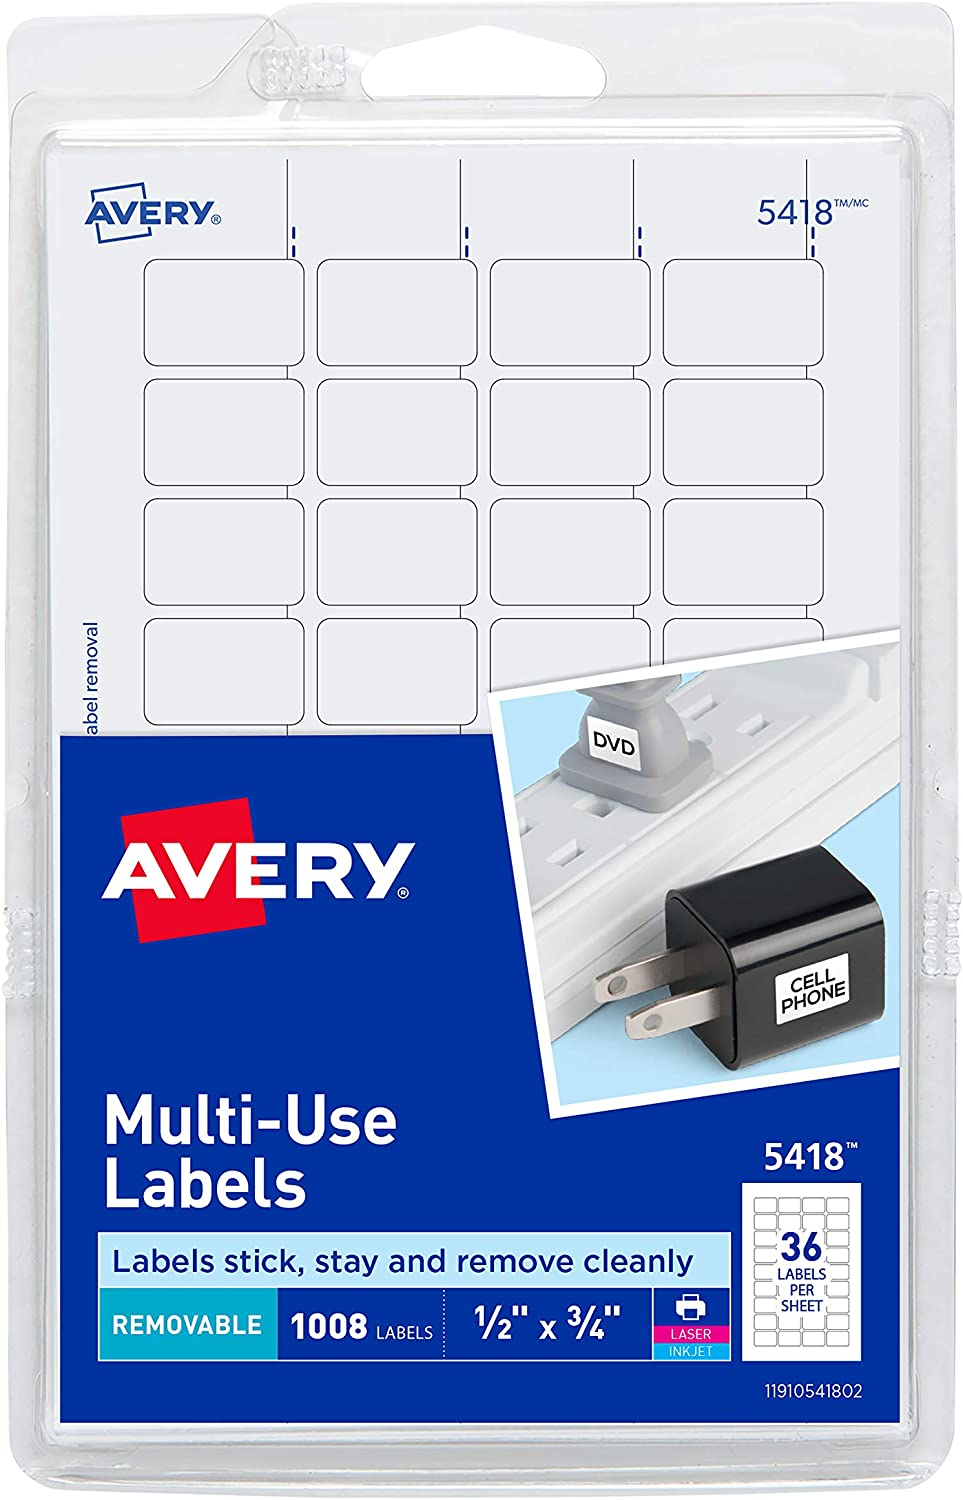 Avery Removable Print or Write Labels, White, 0.5 x 0.75 Inches, Pack of 1008 (5418) : All Purpose Labels : Office Products